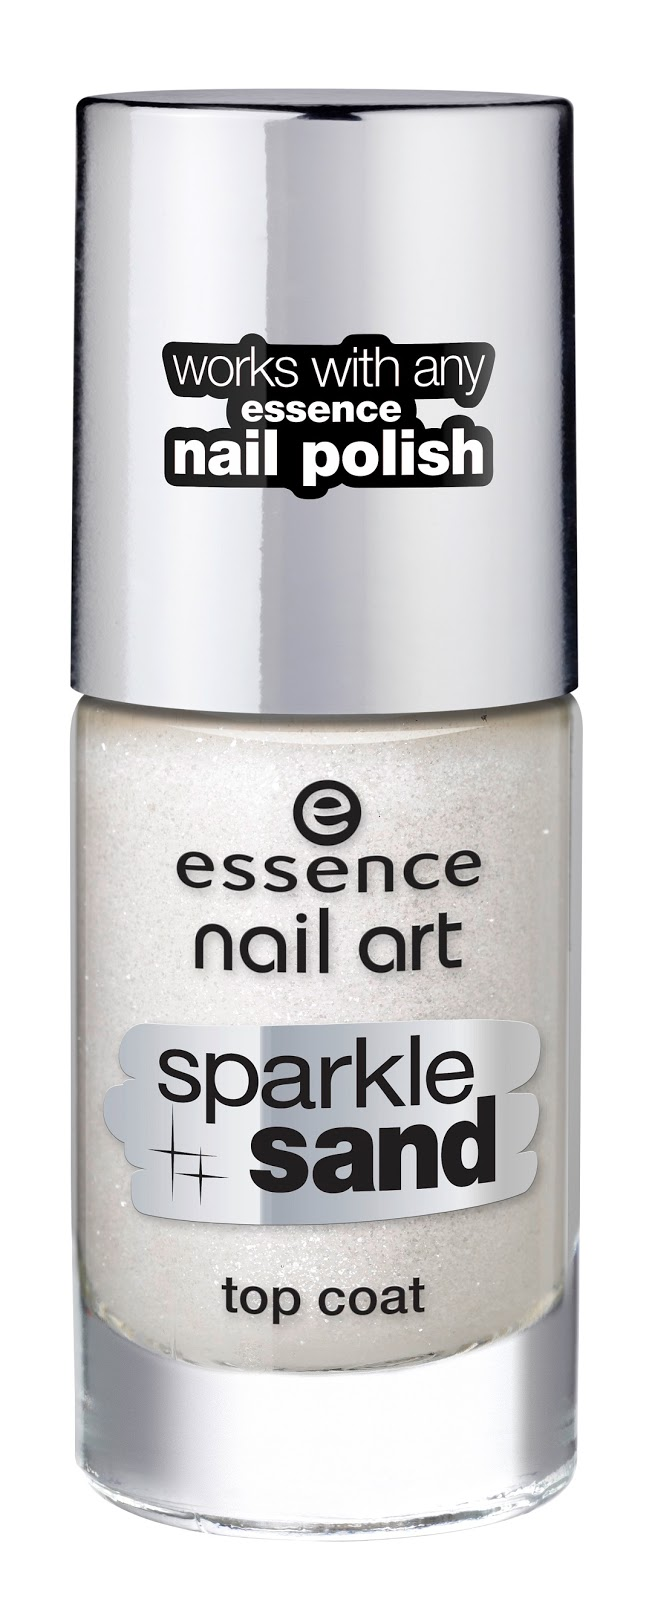 essence new in town – nail art sparkle sand top coat